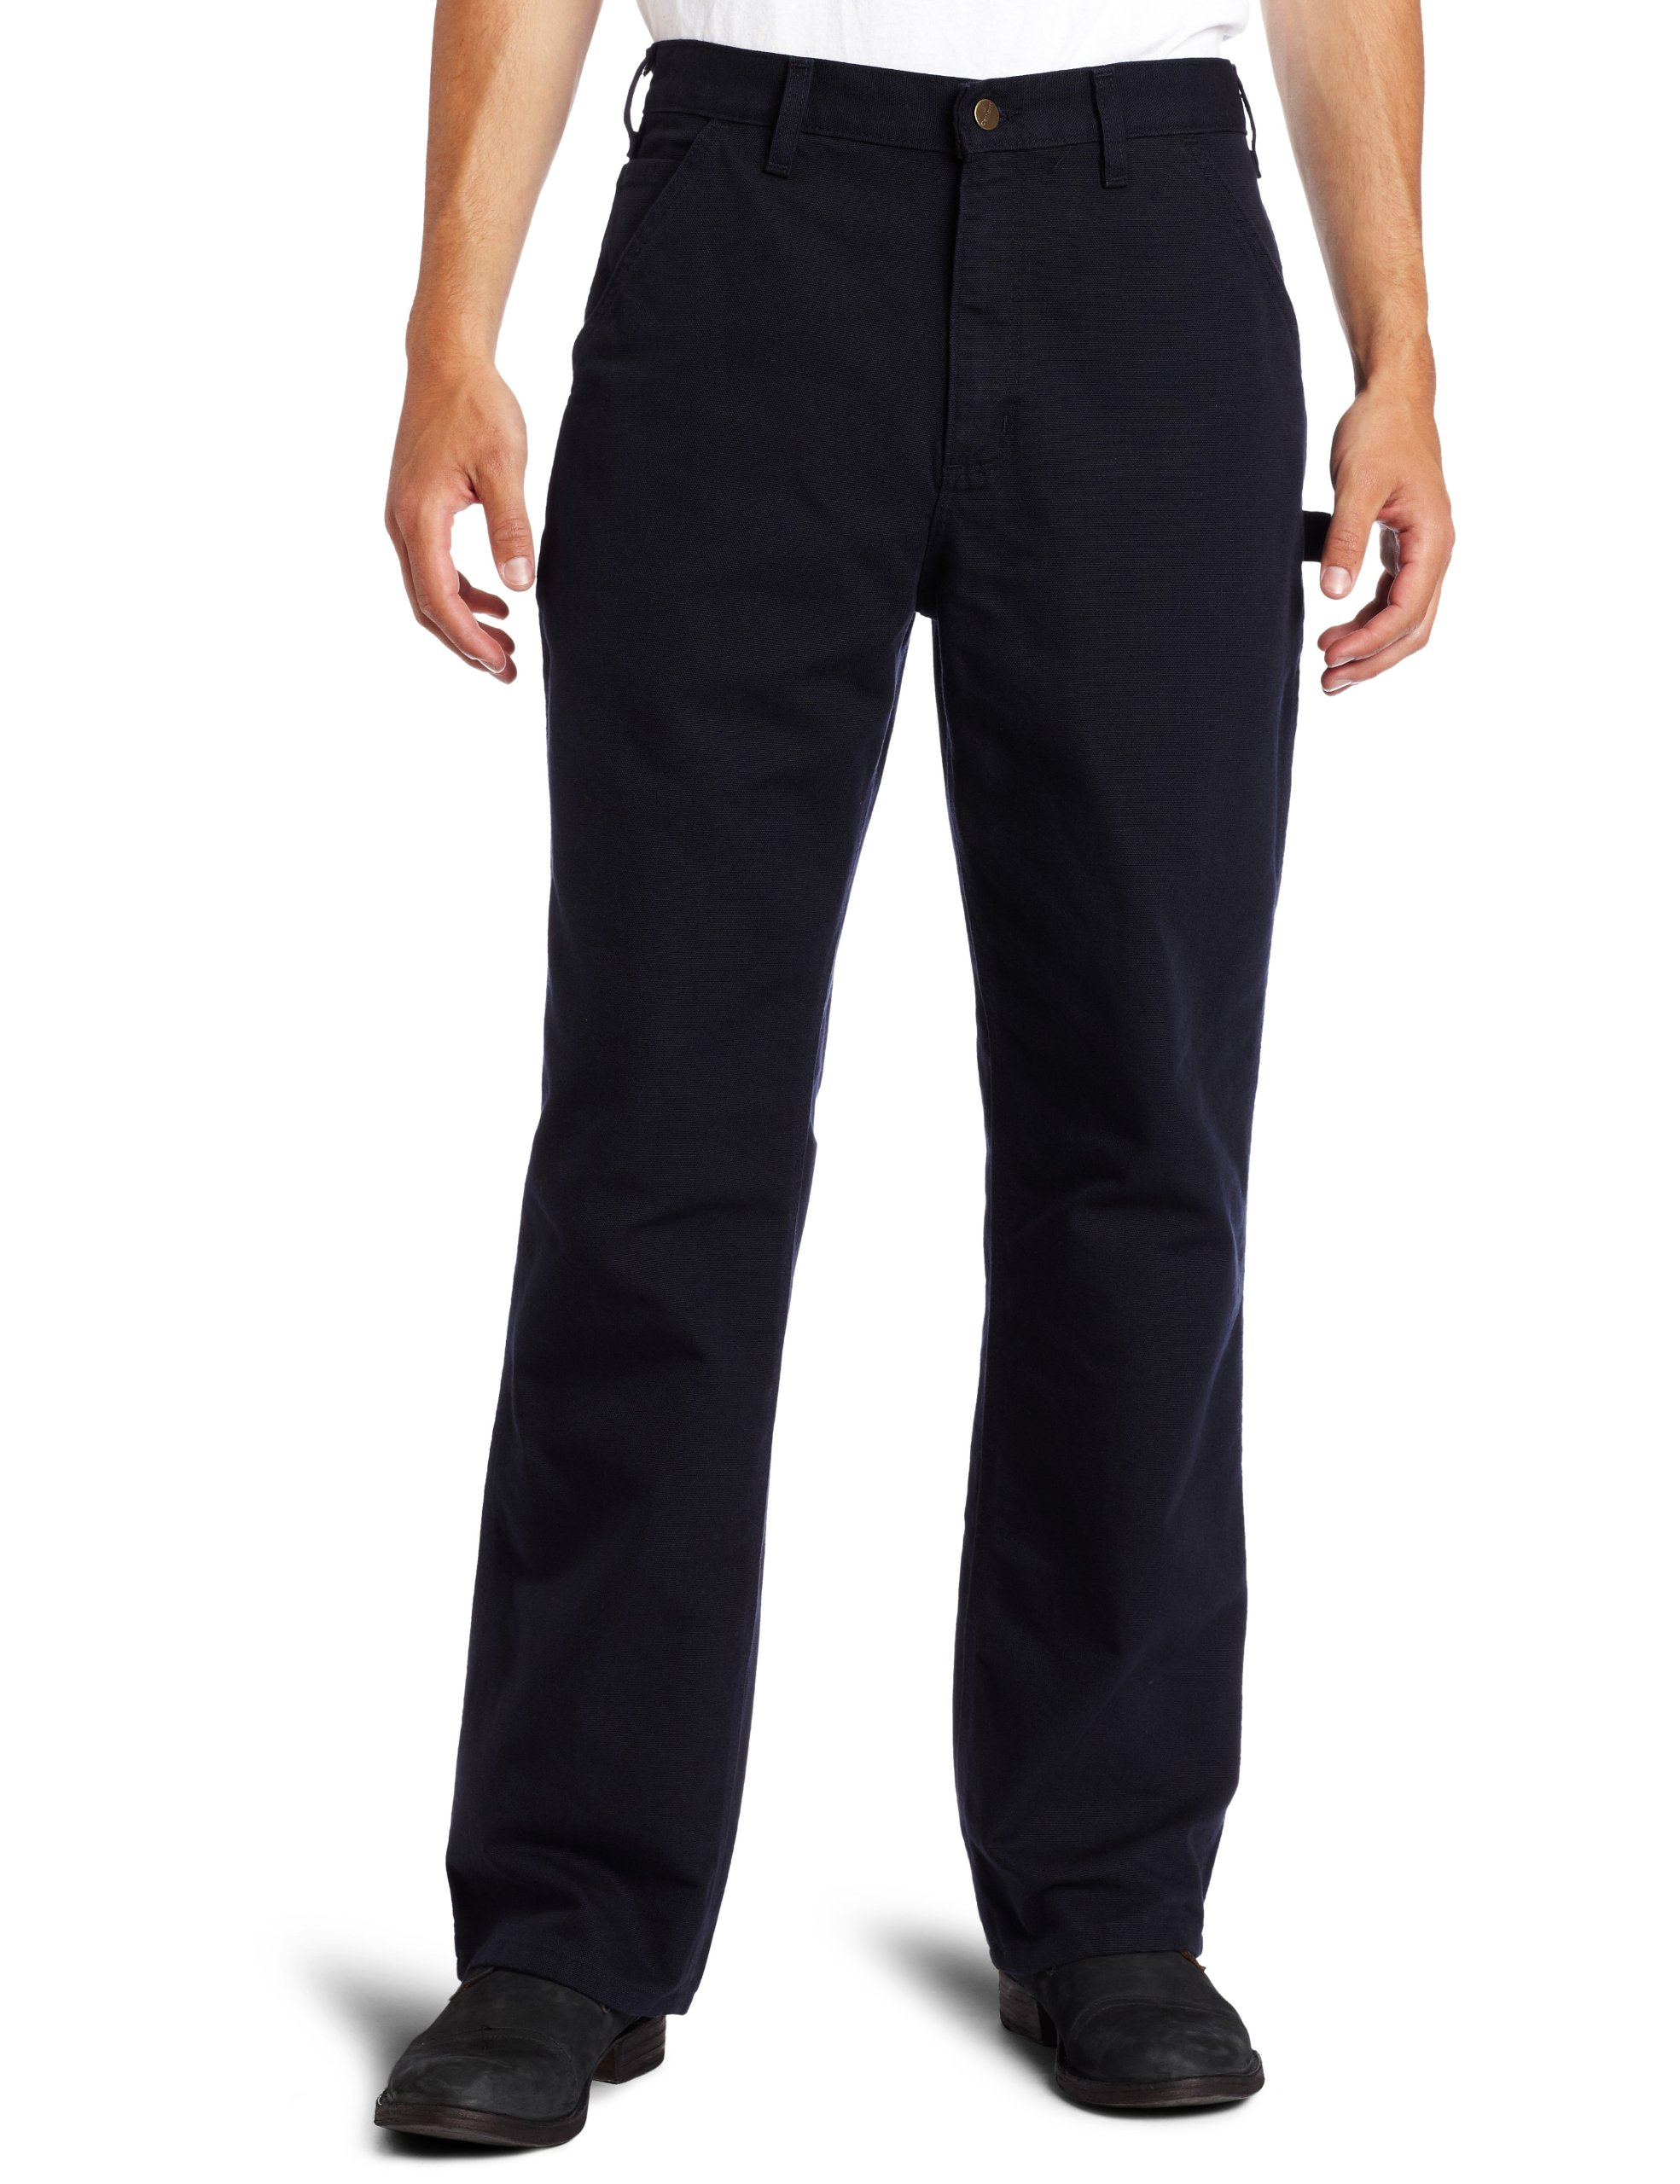 Carhartt Men's Washed Duck Work Dungaree Utility Pant B11,Midnight,28 x 32